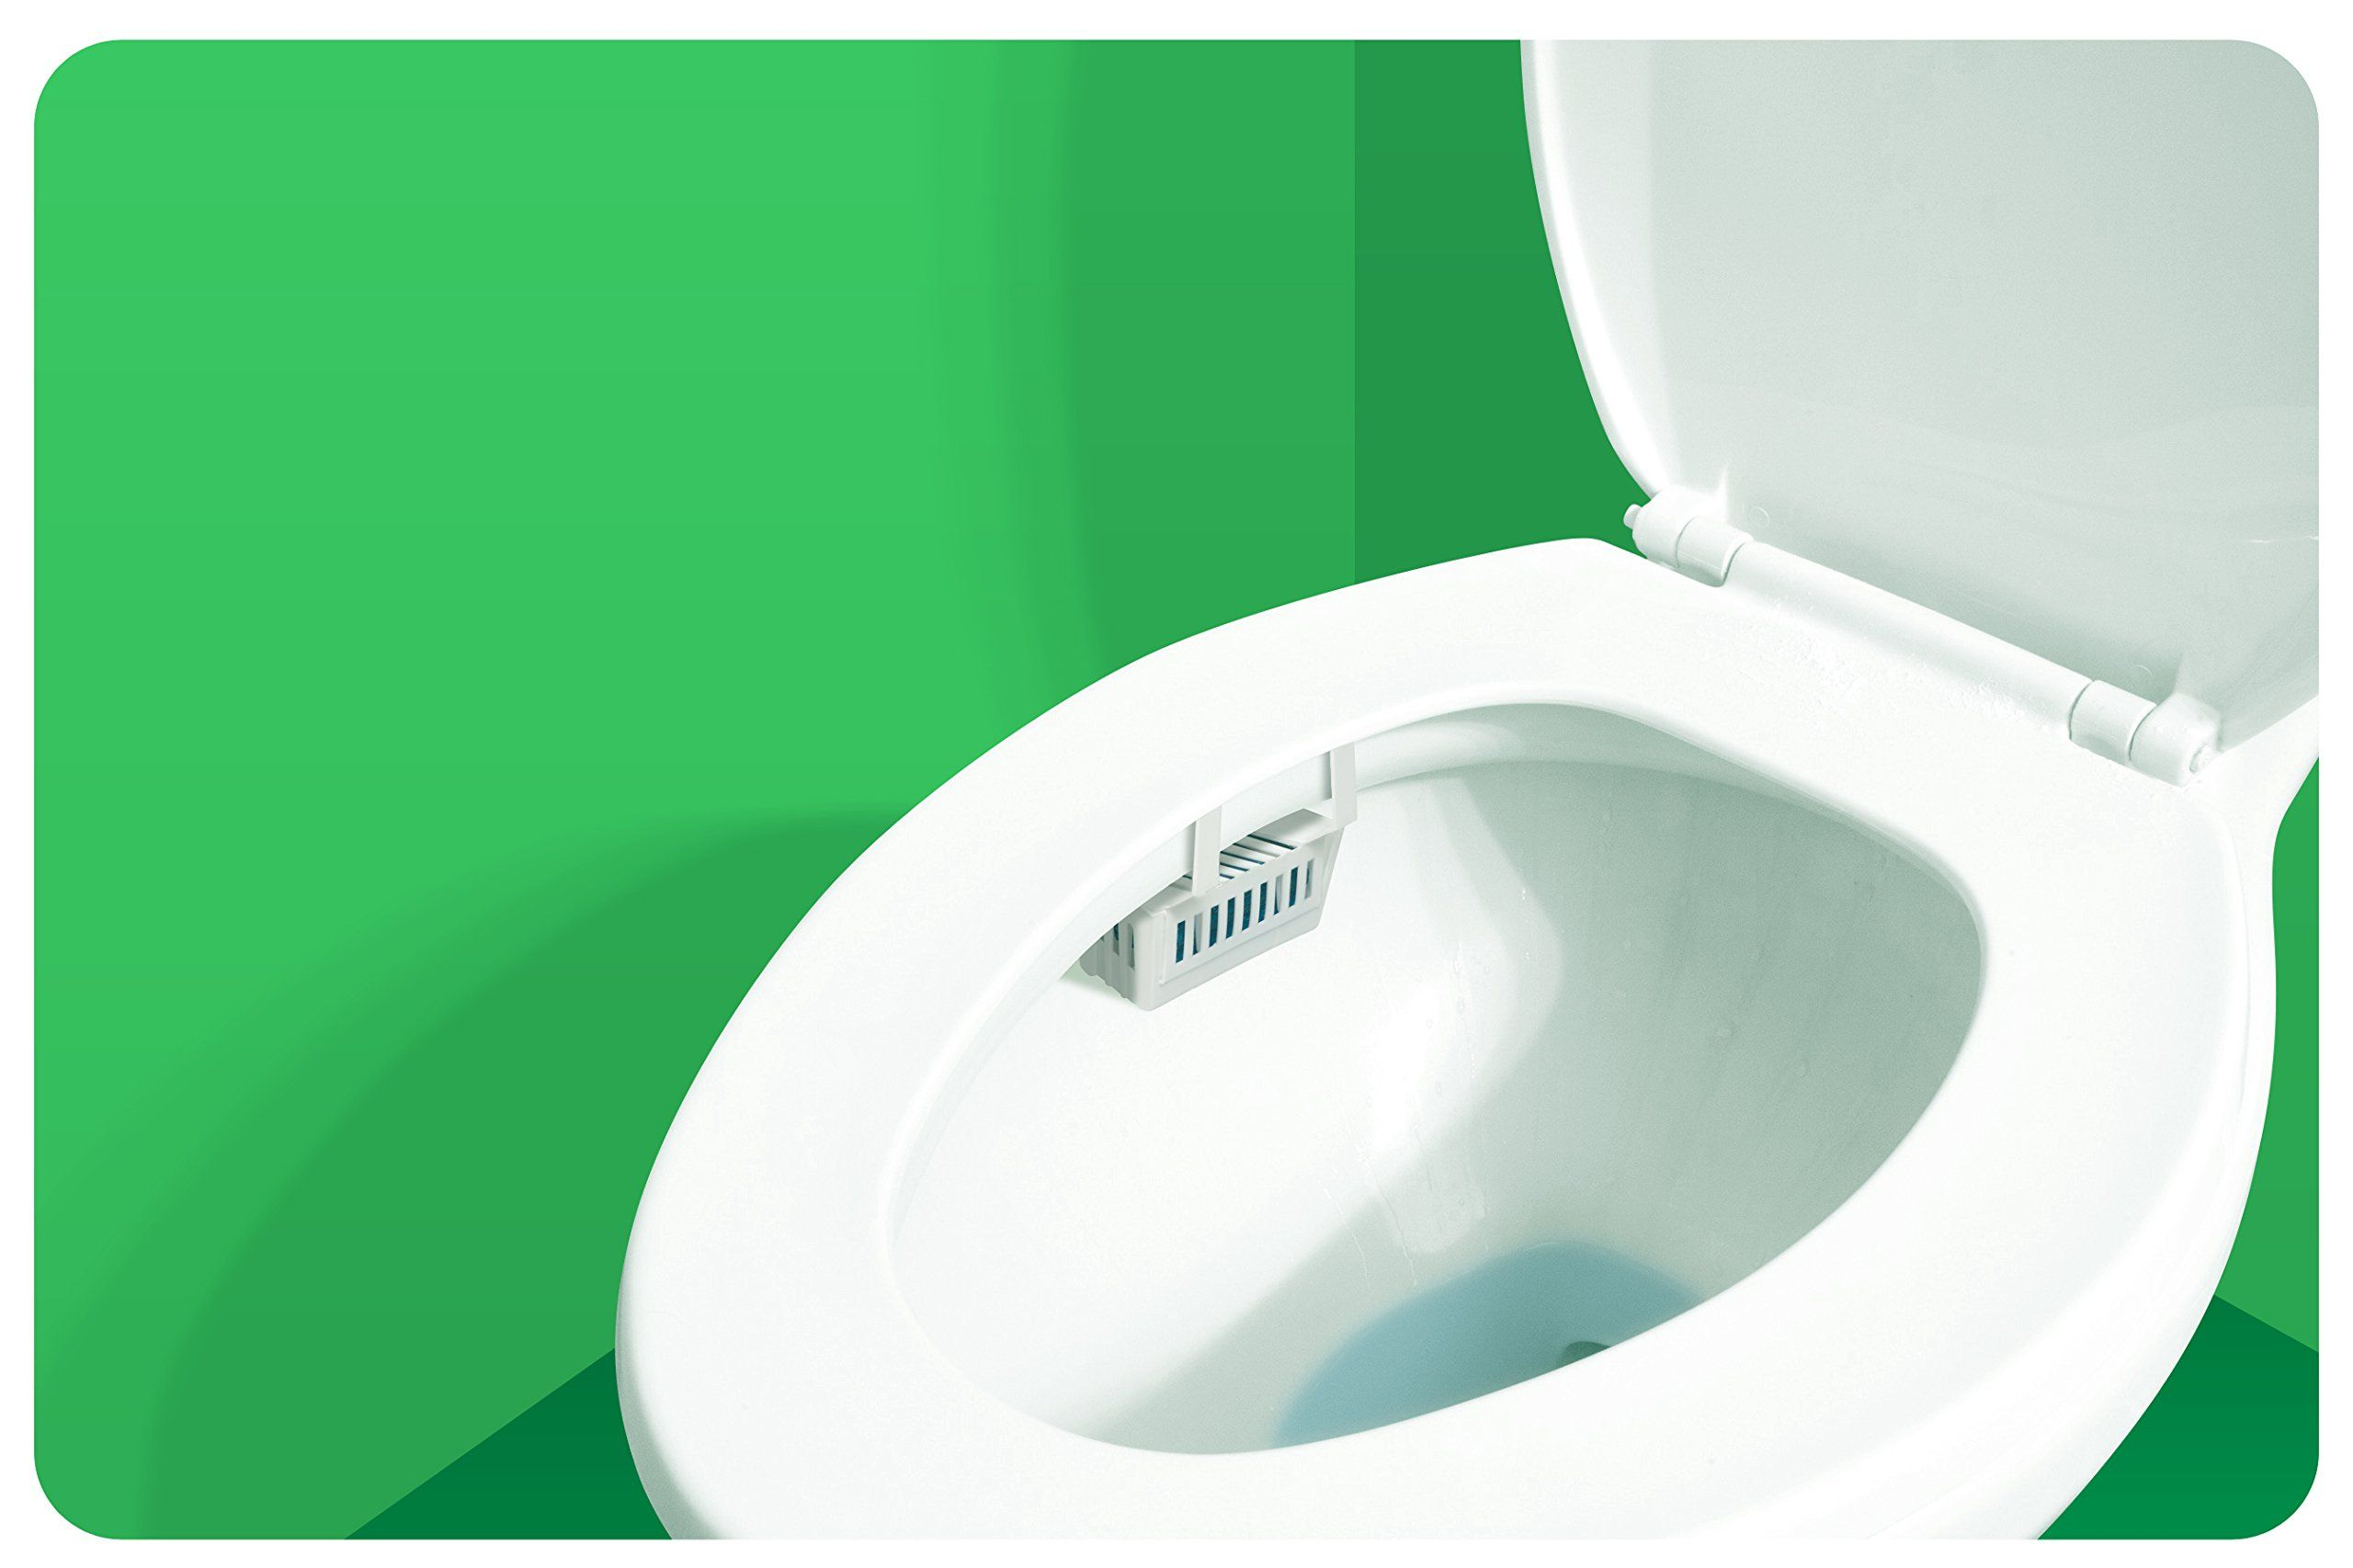 Big D 661 Toilet Bowl Rim Hanger With Nonpara Block Evergreen Fragrance With Enzymes 1500 Flushes Pack Of 12 Ideal For Restrooms In Toilet Bowl Toilet Hanger